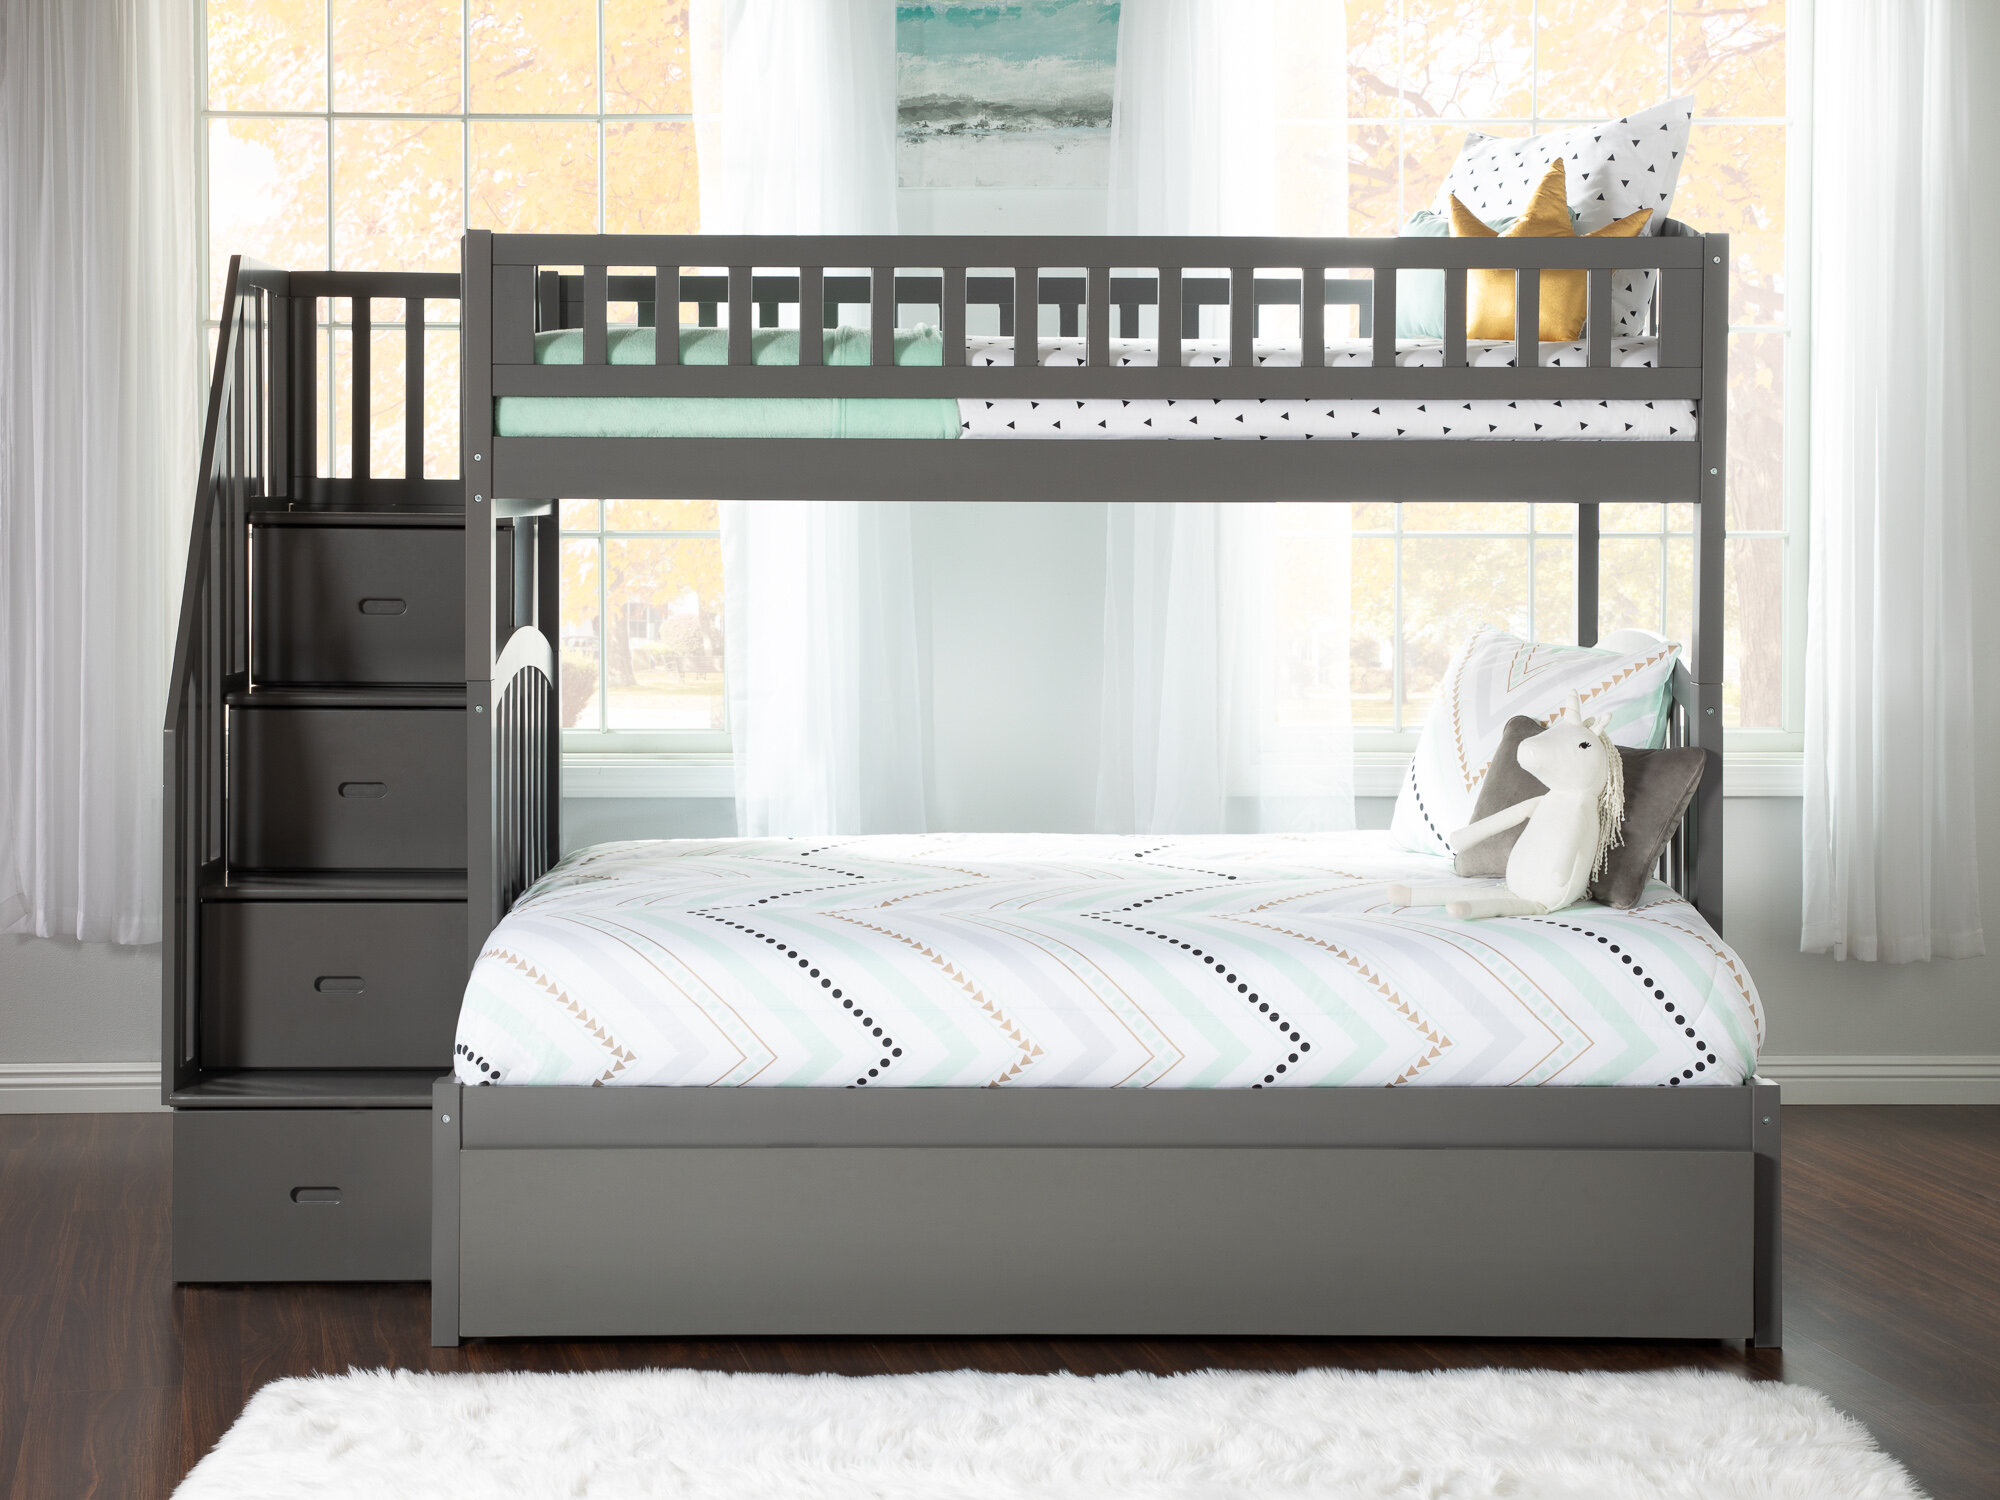 Picture of: Bunk With Stairs Kids Beds You Ll Love In 2020 Wayfair